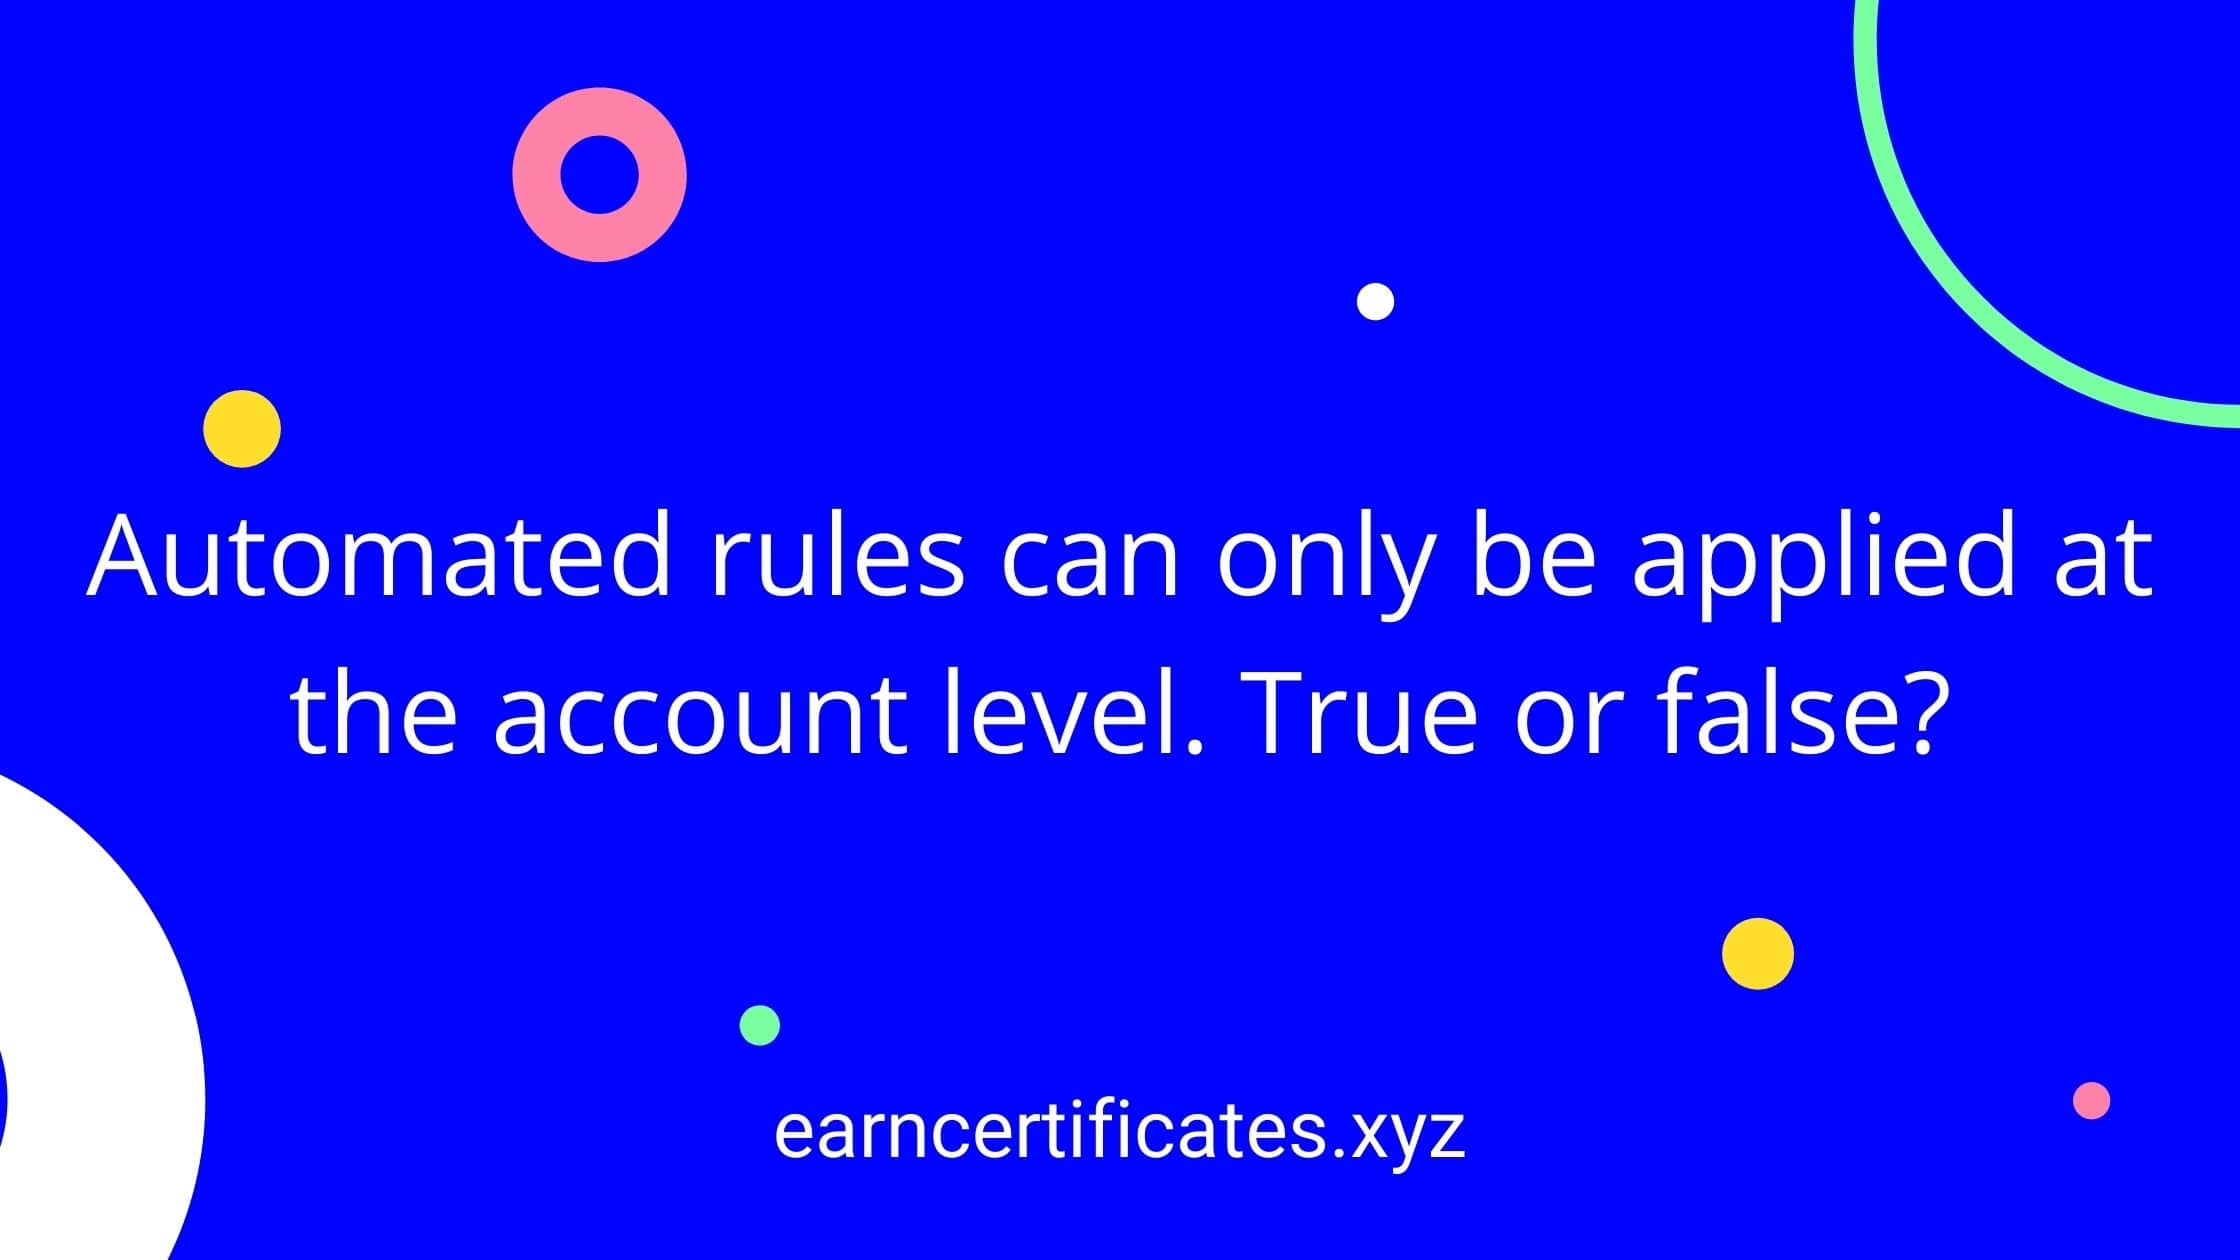 Automated rules can only be applied at the account level. True or false?